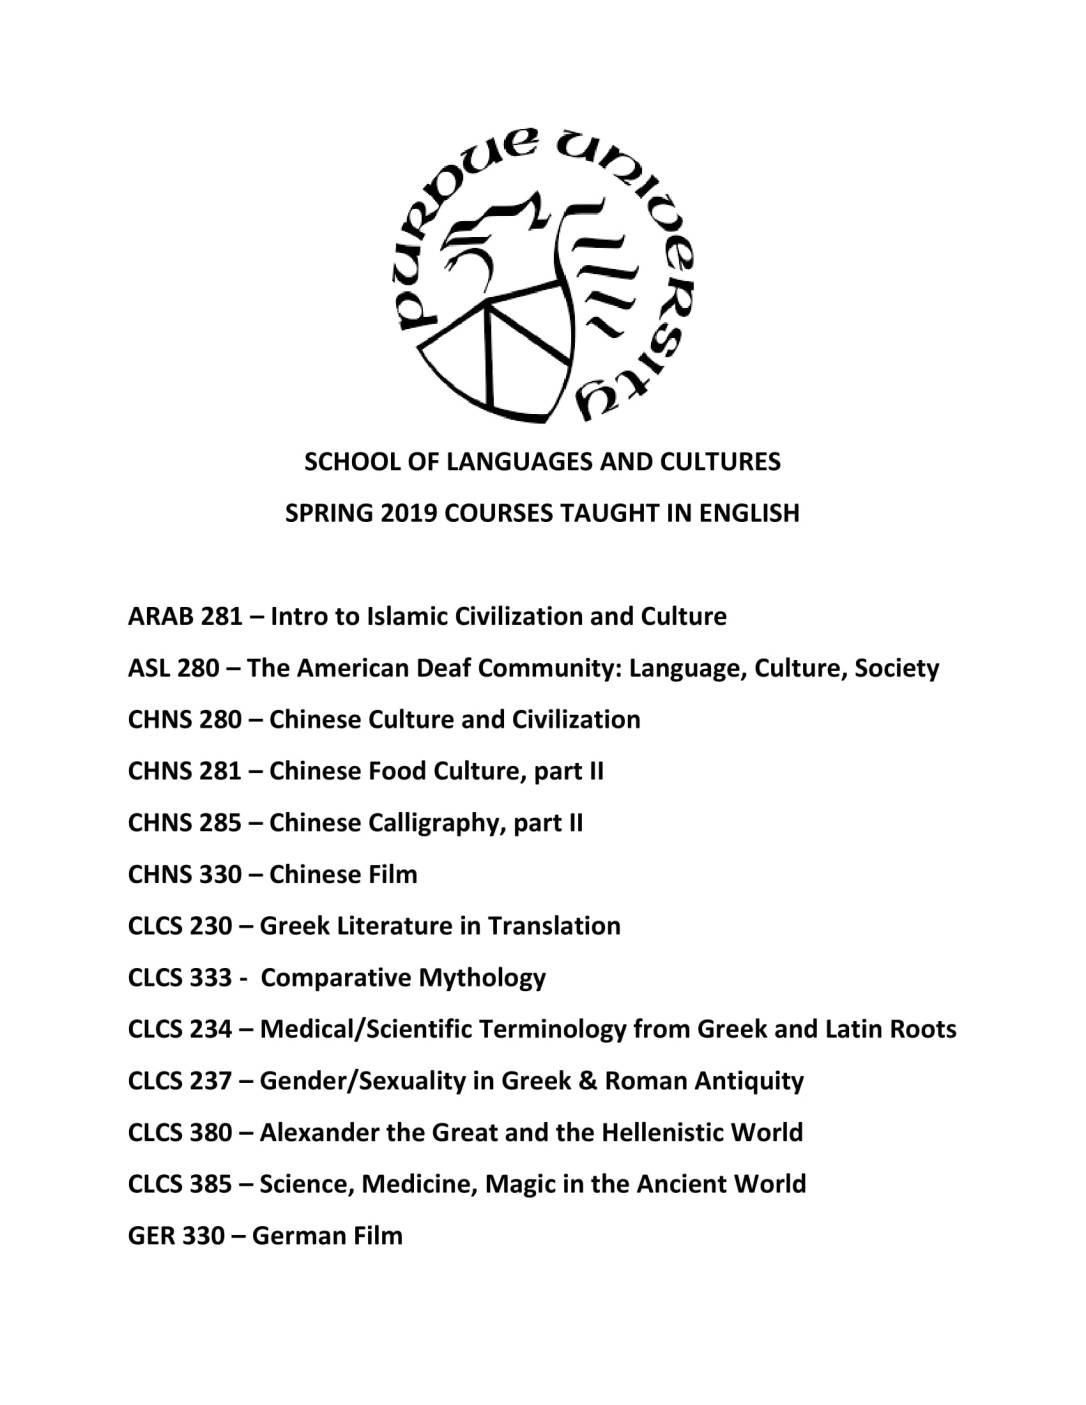 spring 2019 English-Taught Courses SLC-1